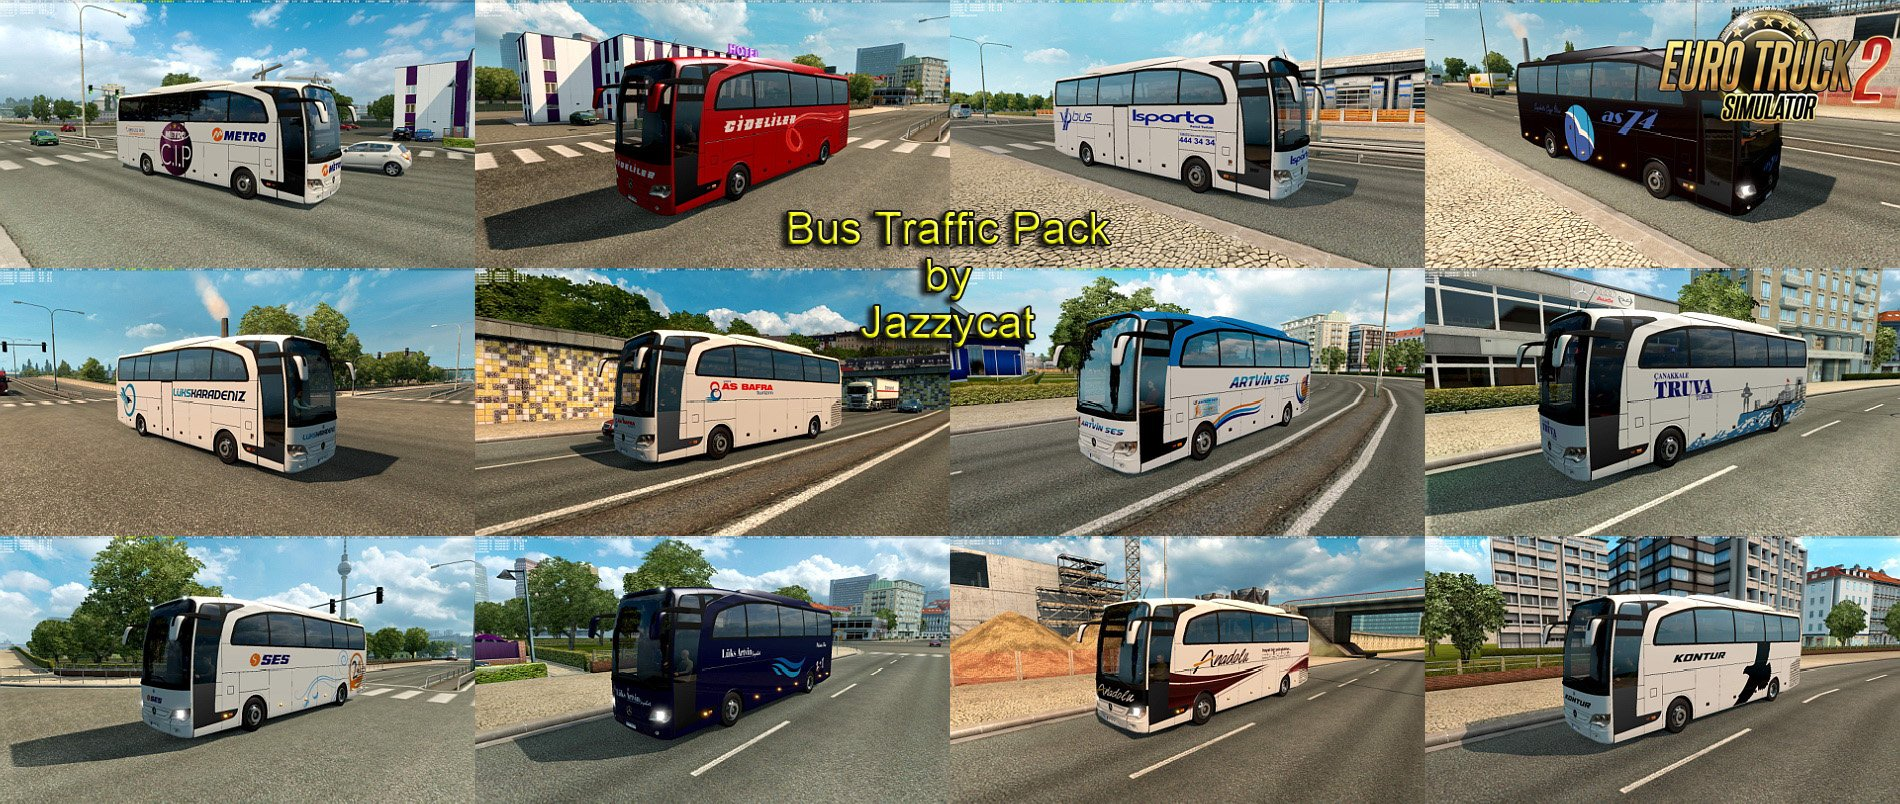 Bus Traffic Pack v1.8.2 by Jazzycat [1.27.x]